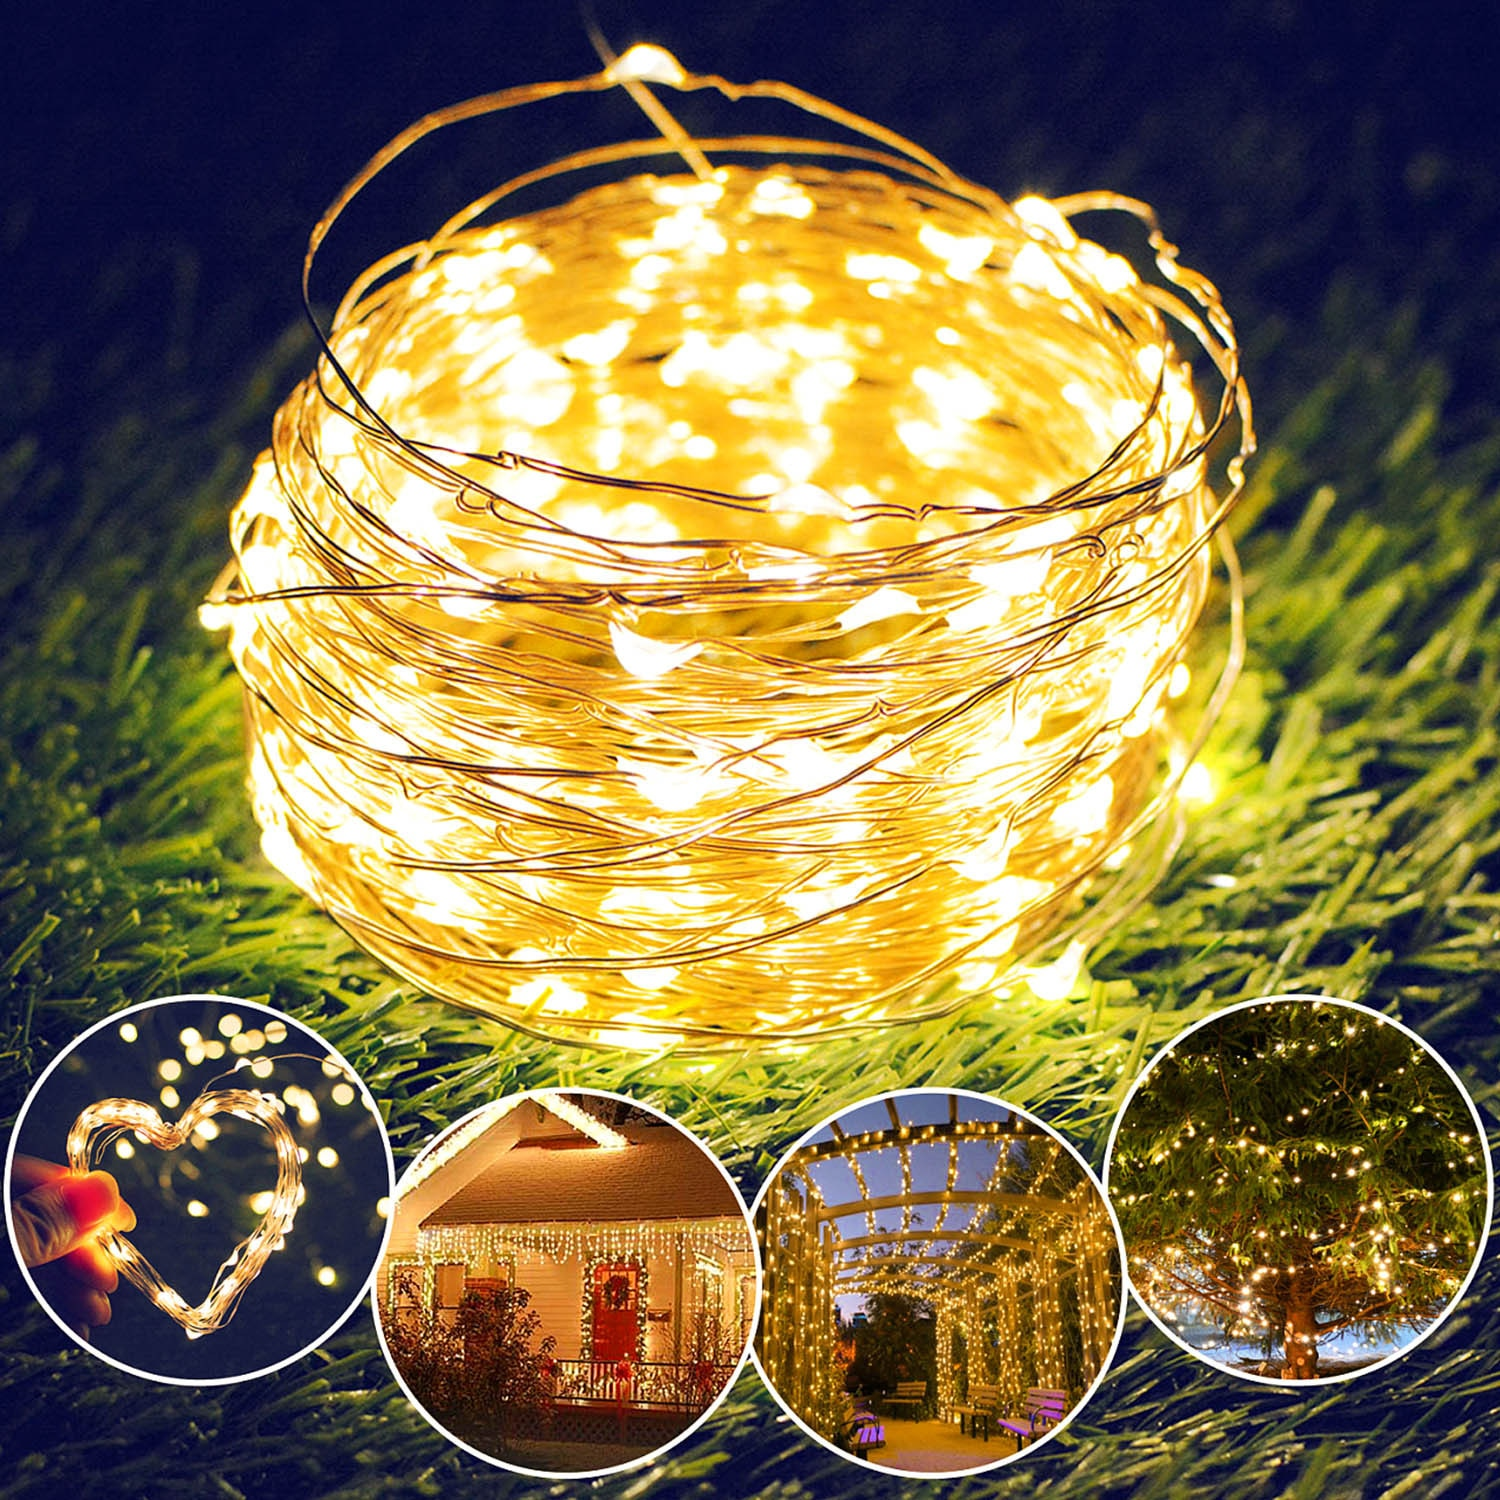 H25cbddc67c62484587b70f32de746edce - Led Fairy Lights Copper Wire String 1/2/5/10M Holiday Outdoor Lamp Garland Luces For Christmas Tree Wedding Party Decoration